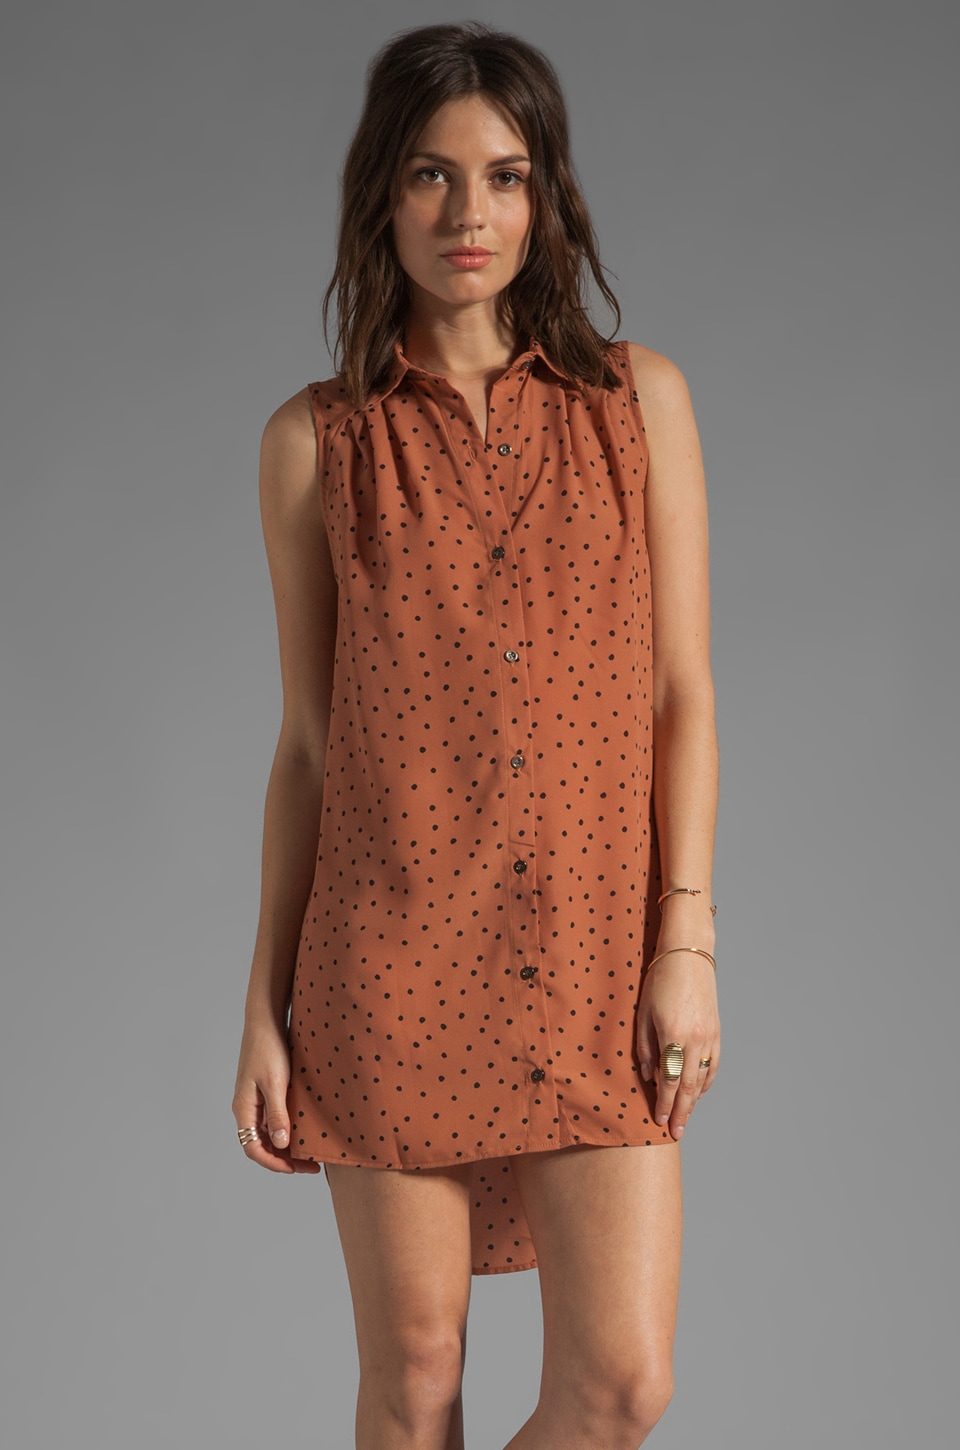 MINKPINK Going Dotty Shirt Dress in Multi